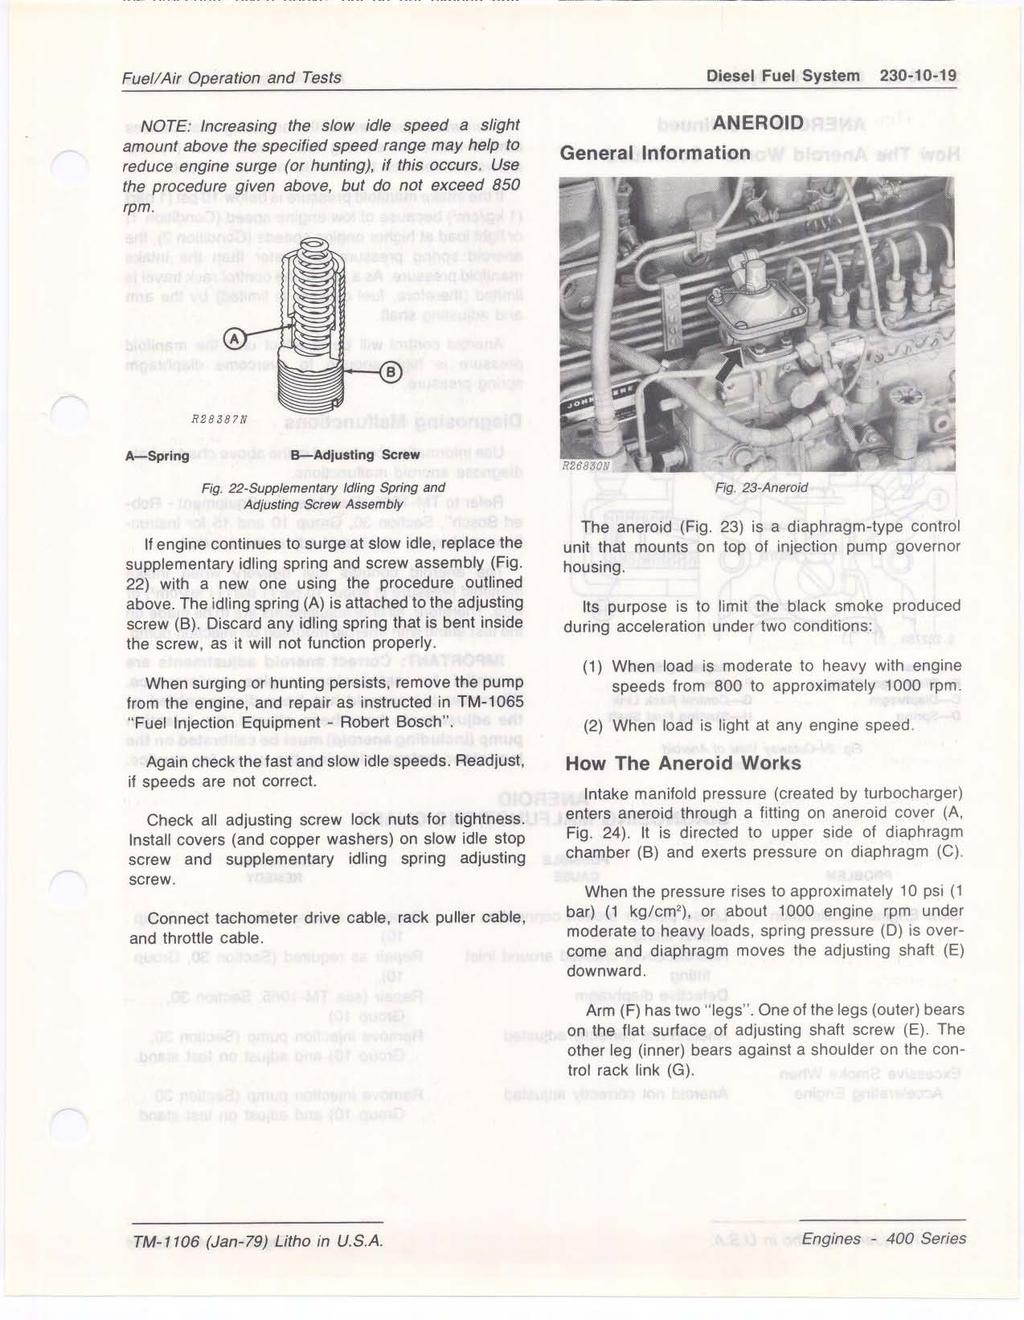 Section 230 FUEL/AIR OPERATION AND TESTS CONTENTS OF THIS SECTION - PDF